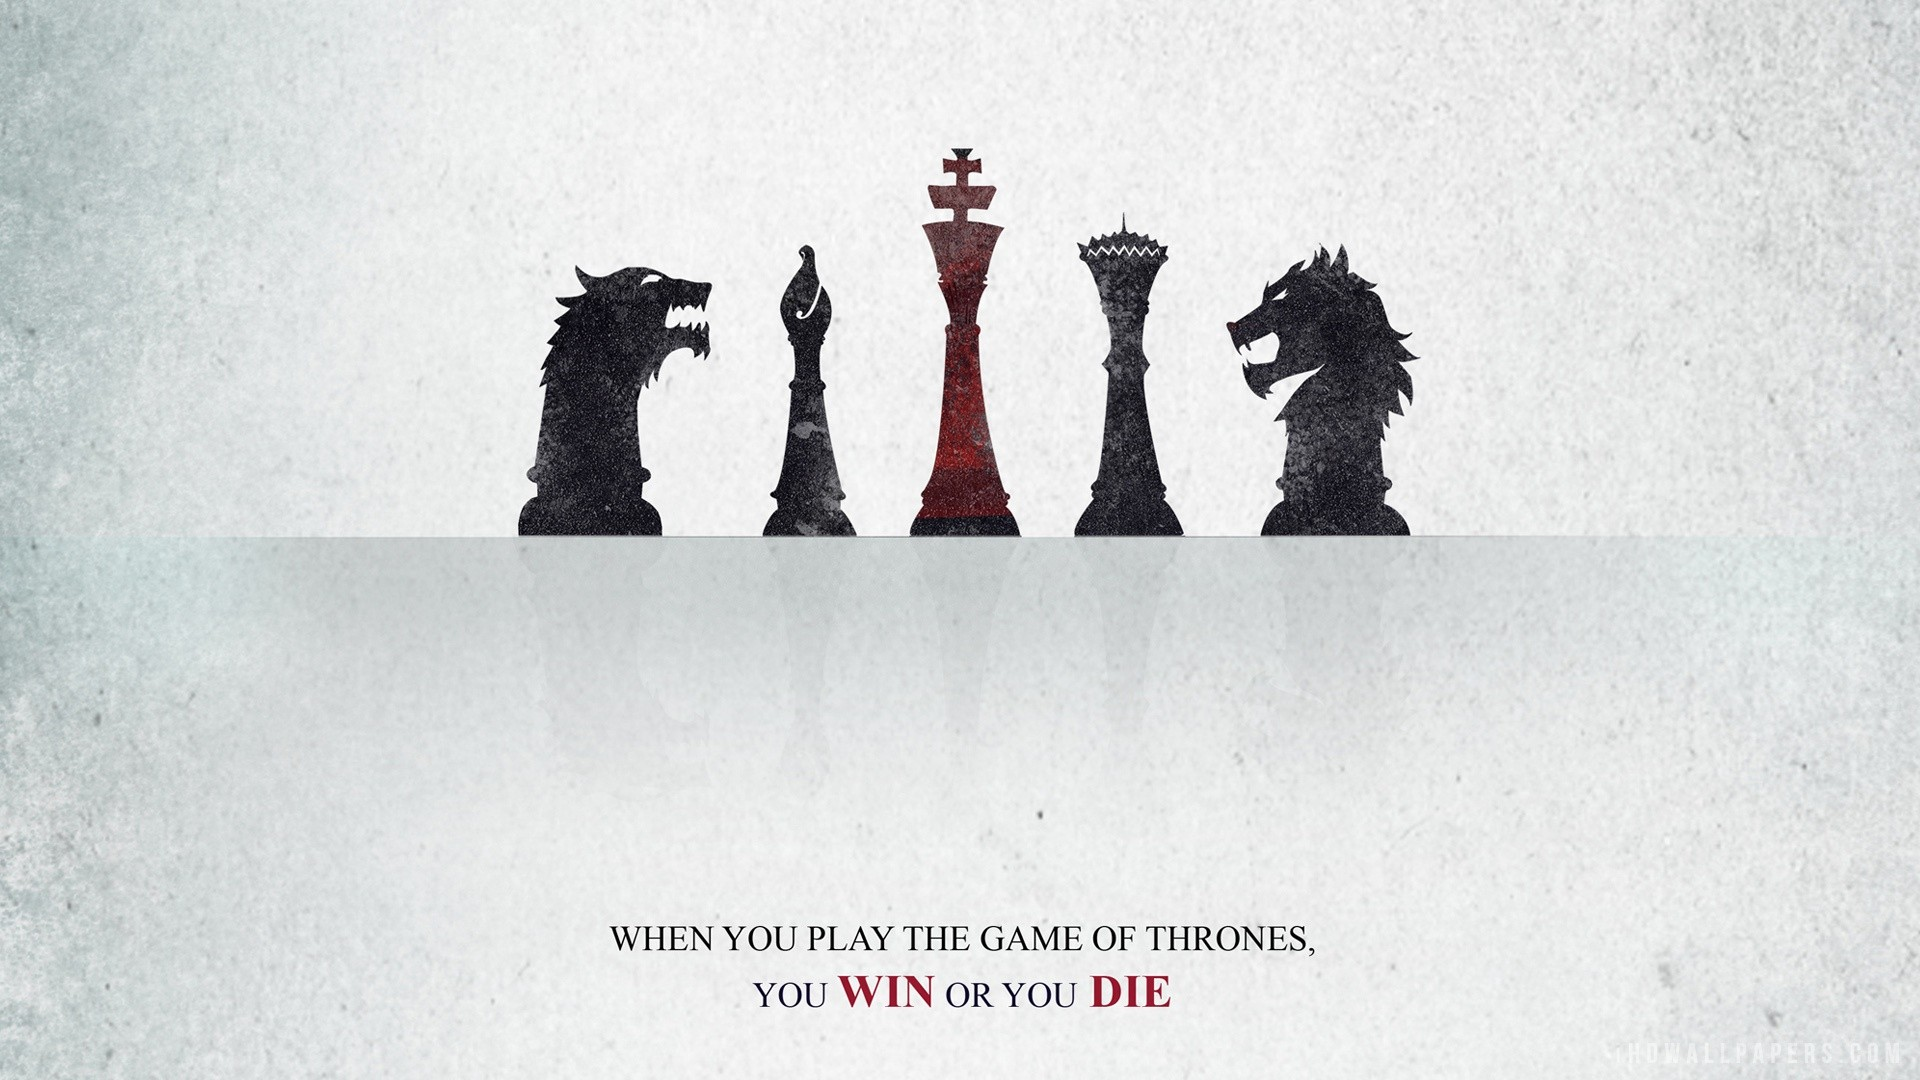 Download Play Game Of Thrones Win Die HD Wallpaper Search more high 1920x1080